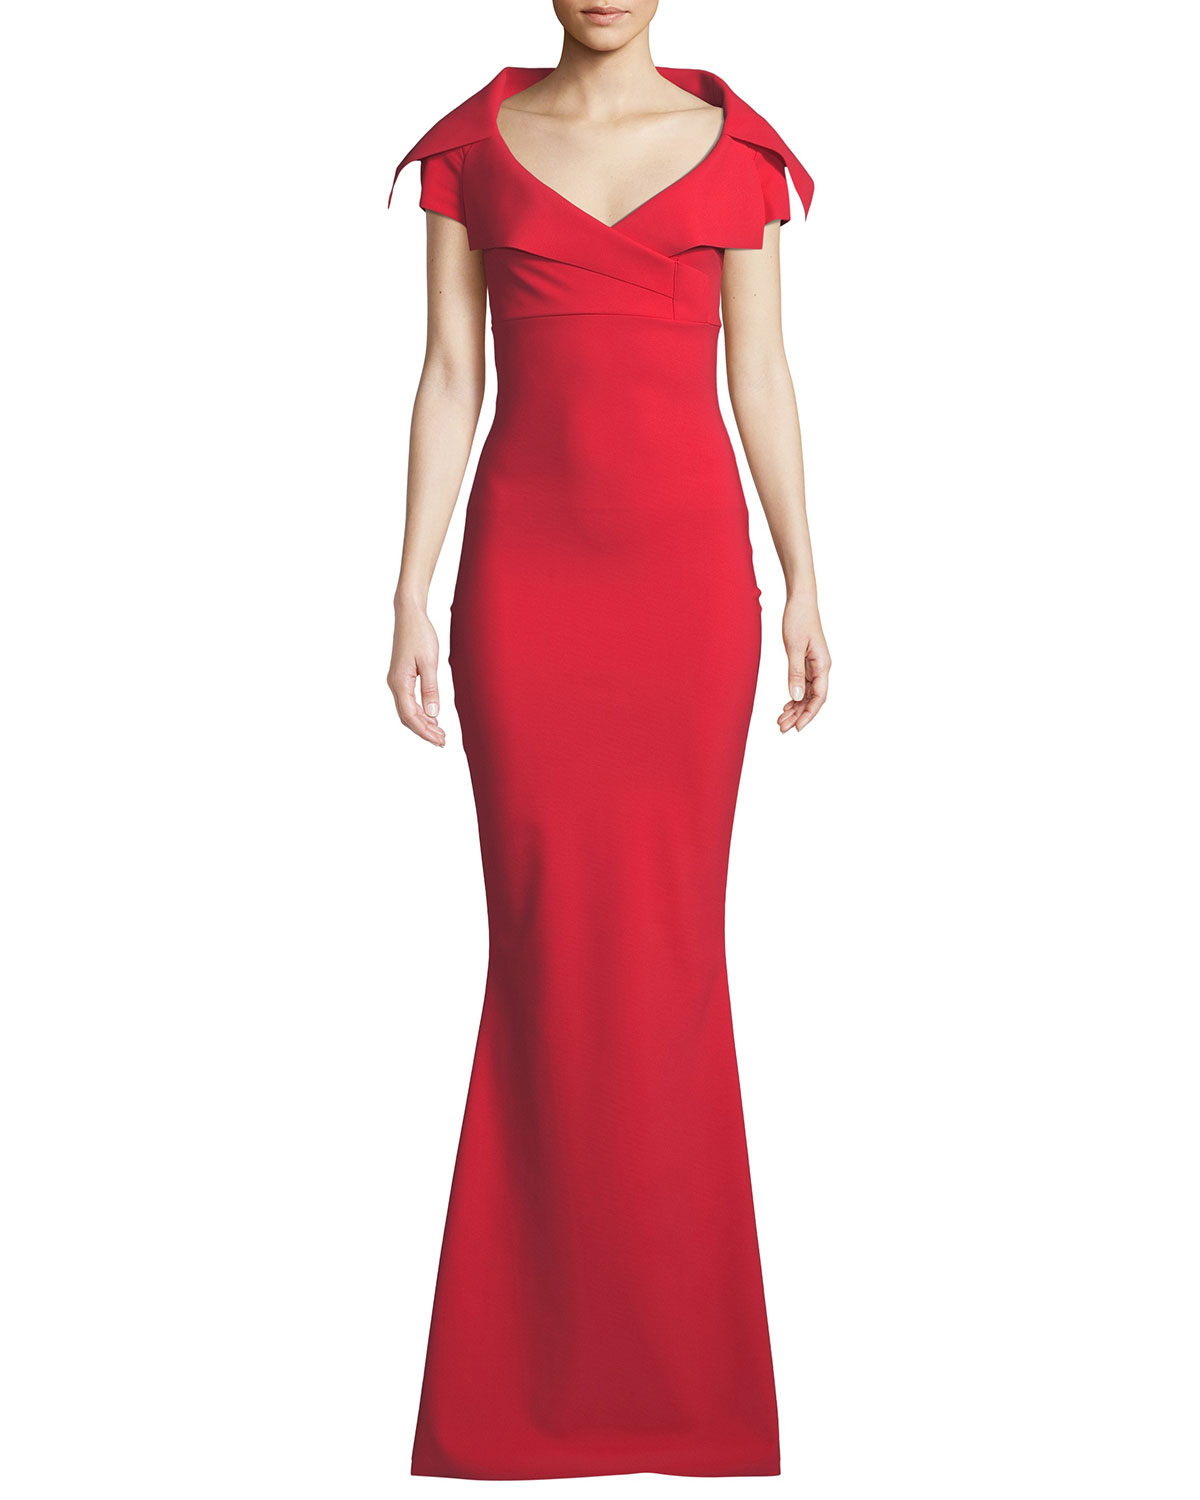 Aurellina Collared Cap-Sleeve Gown in Red